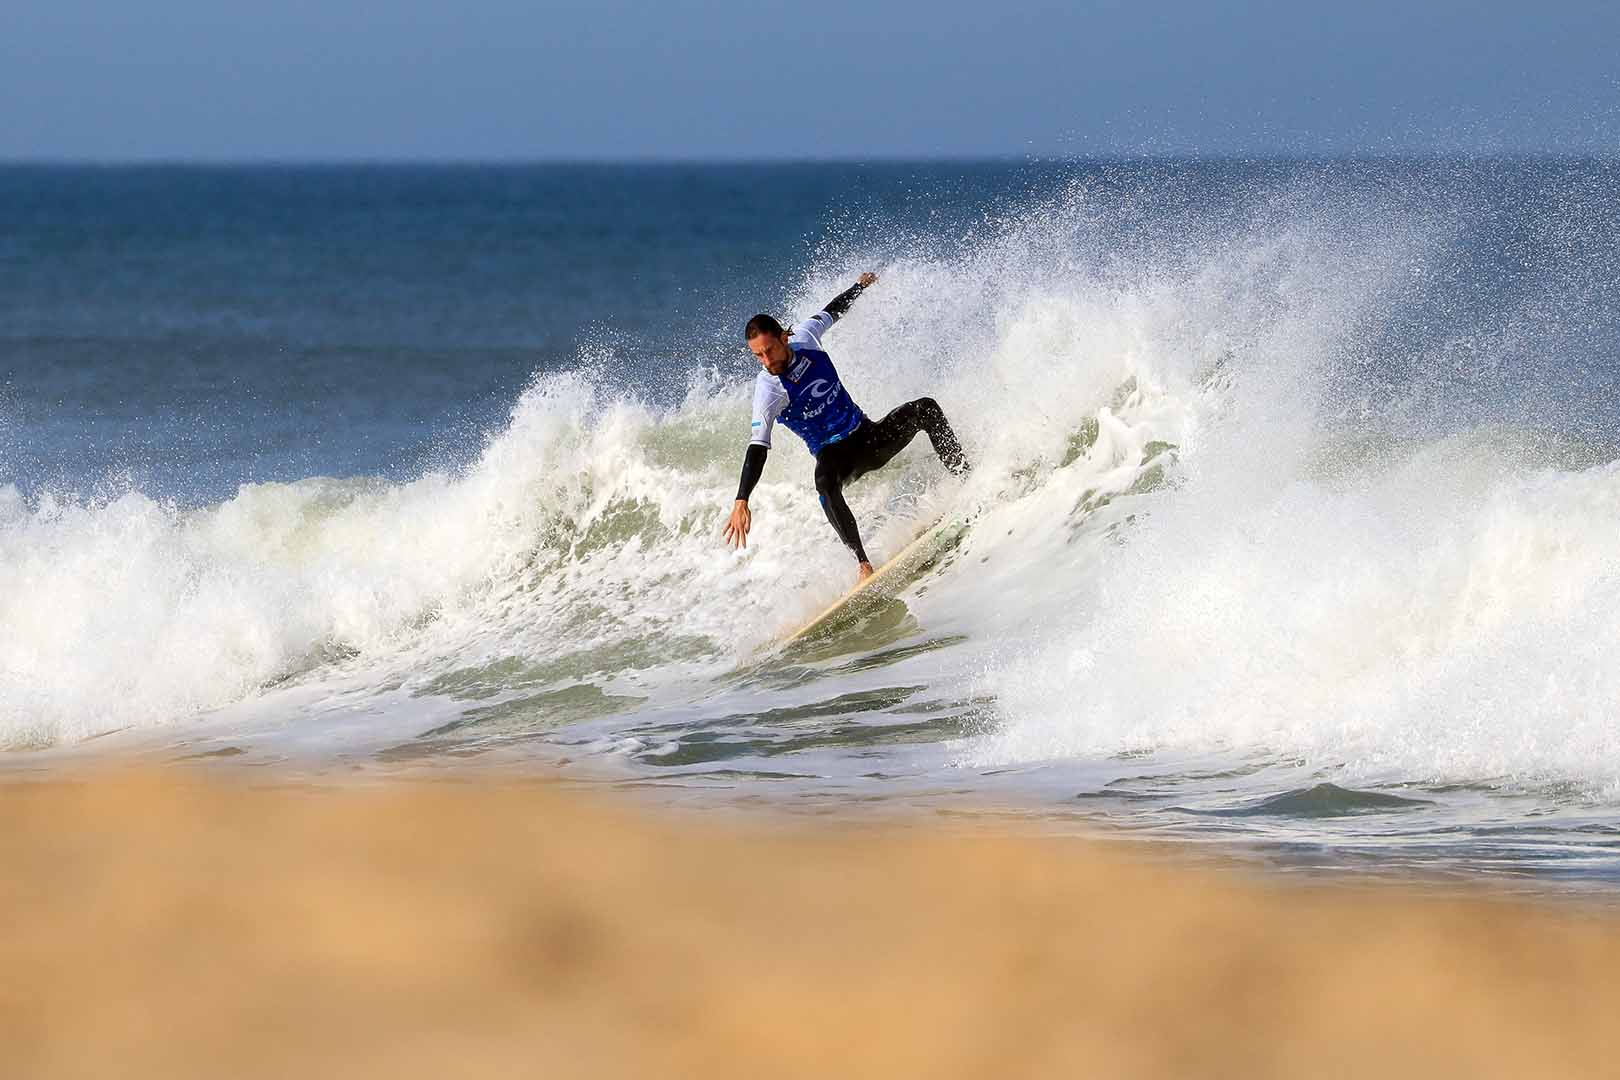 Photographe Bordeaux Photographe sport surf lacanau surf club clément philippon